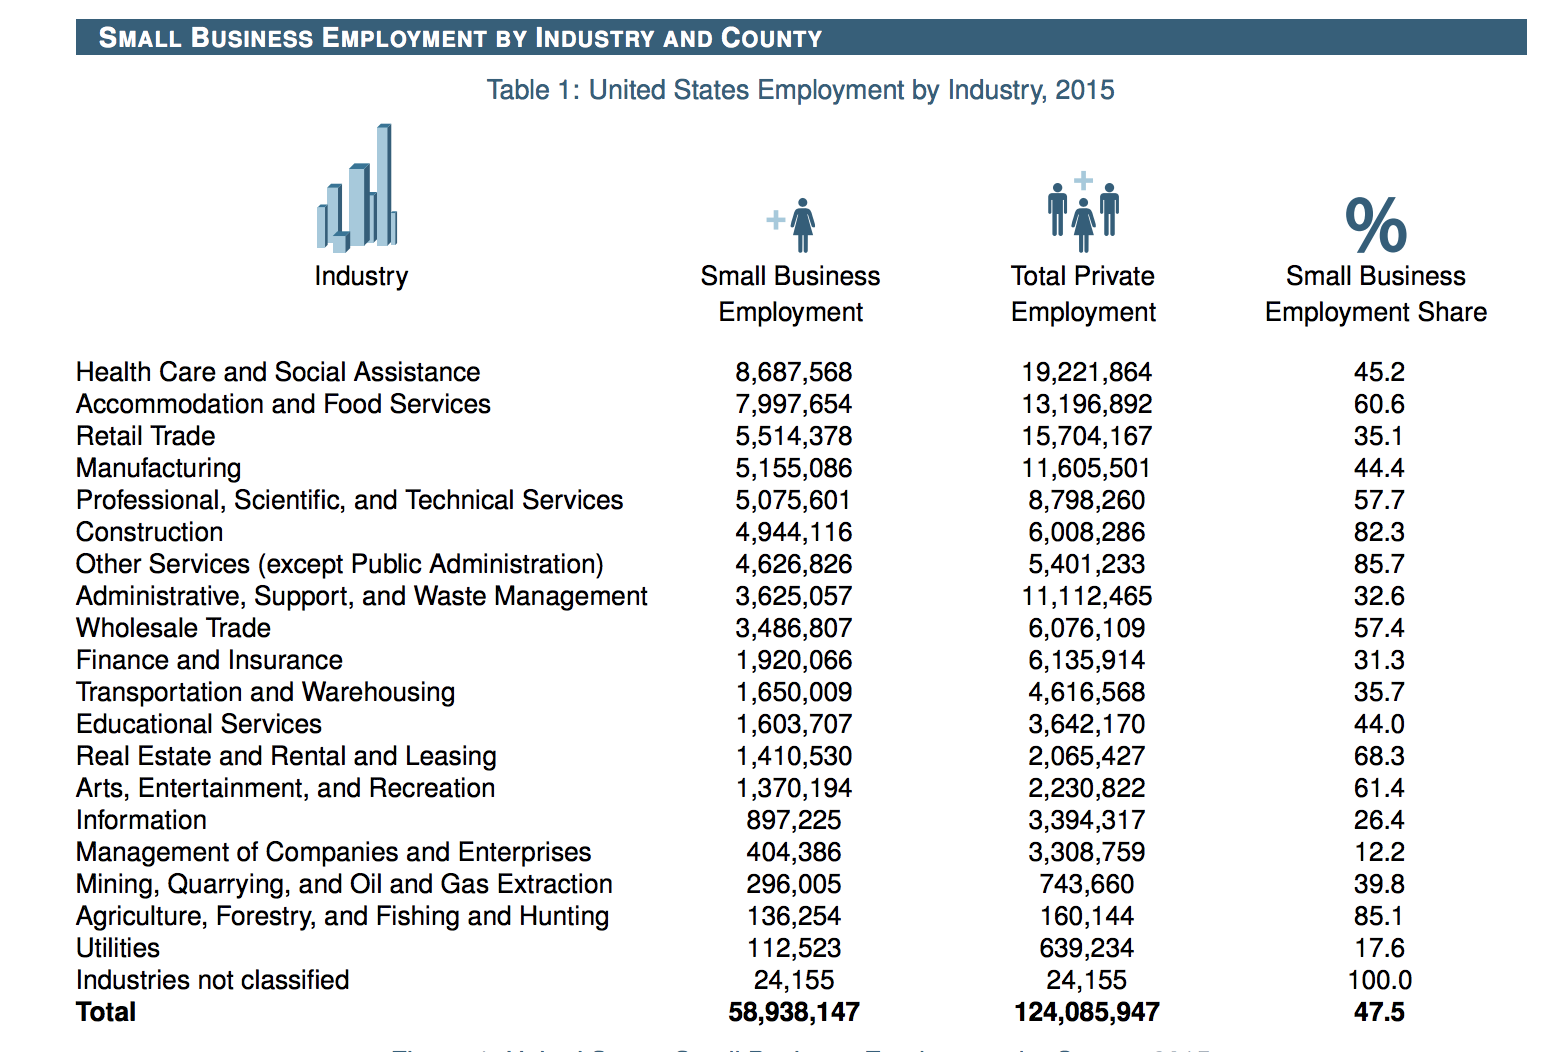 small business employment by industry and country